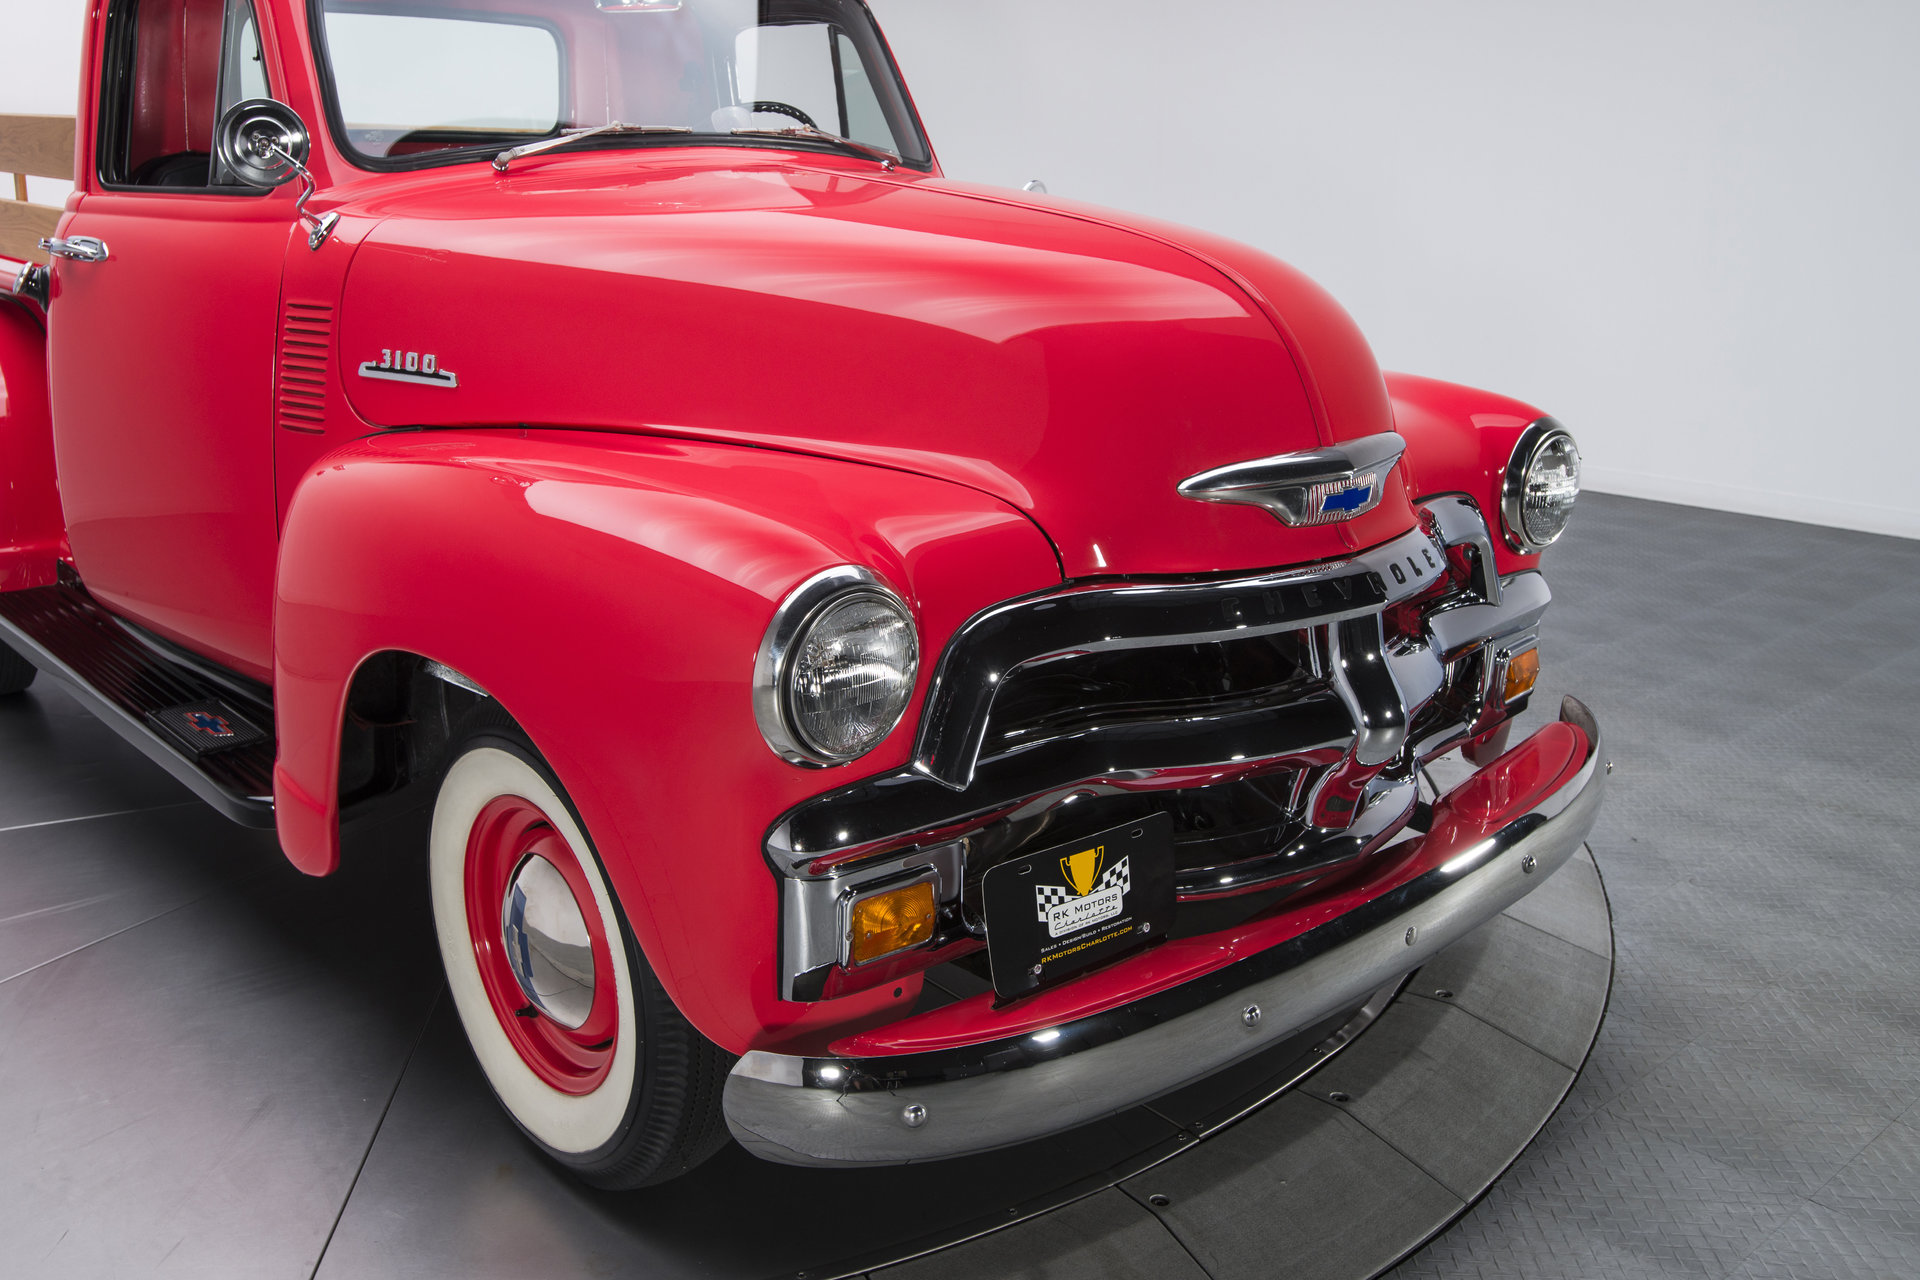 136046 1954 Chevrolet 3100 Pickup Truck Rk Motors Classic And Paint Colors For Sale